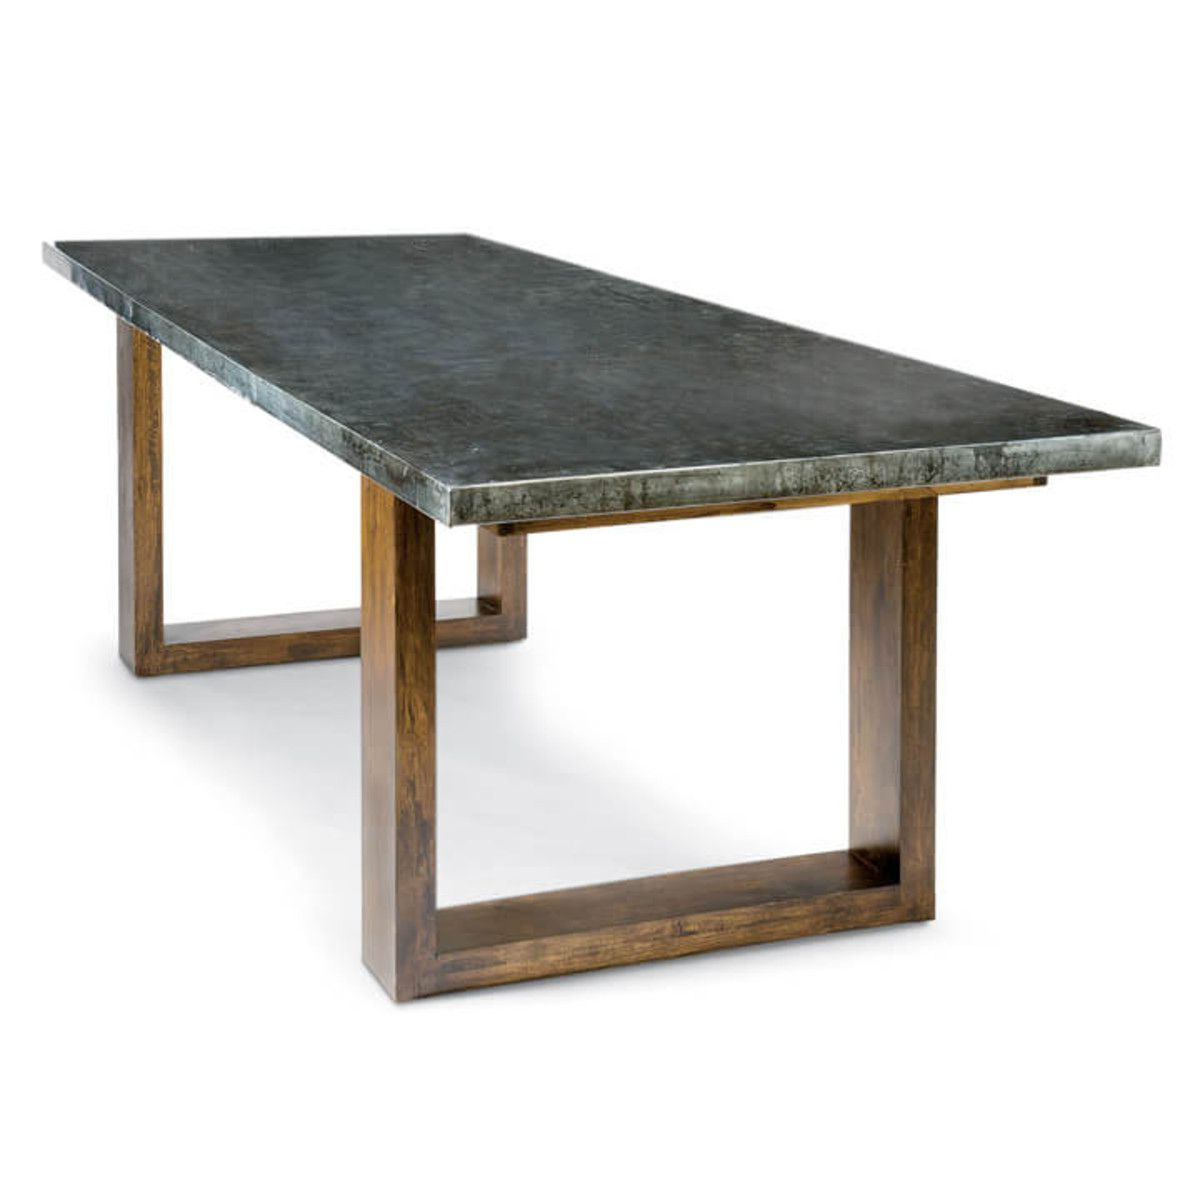 Acacia Wood Dining Tables With Sheet Metal Base Within Best And Newest Lfd – Zinc Dining Table With Plain Top (View 16 of 25)